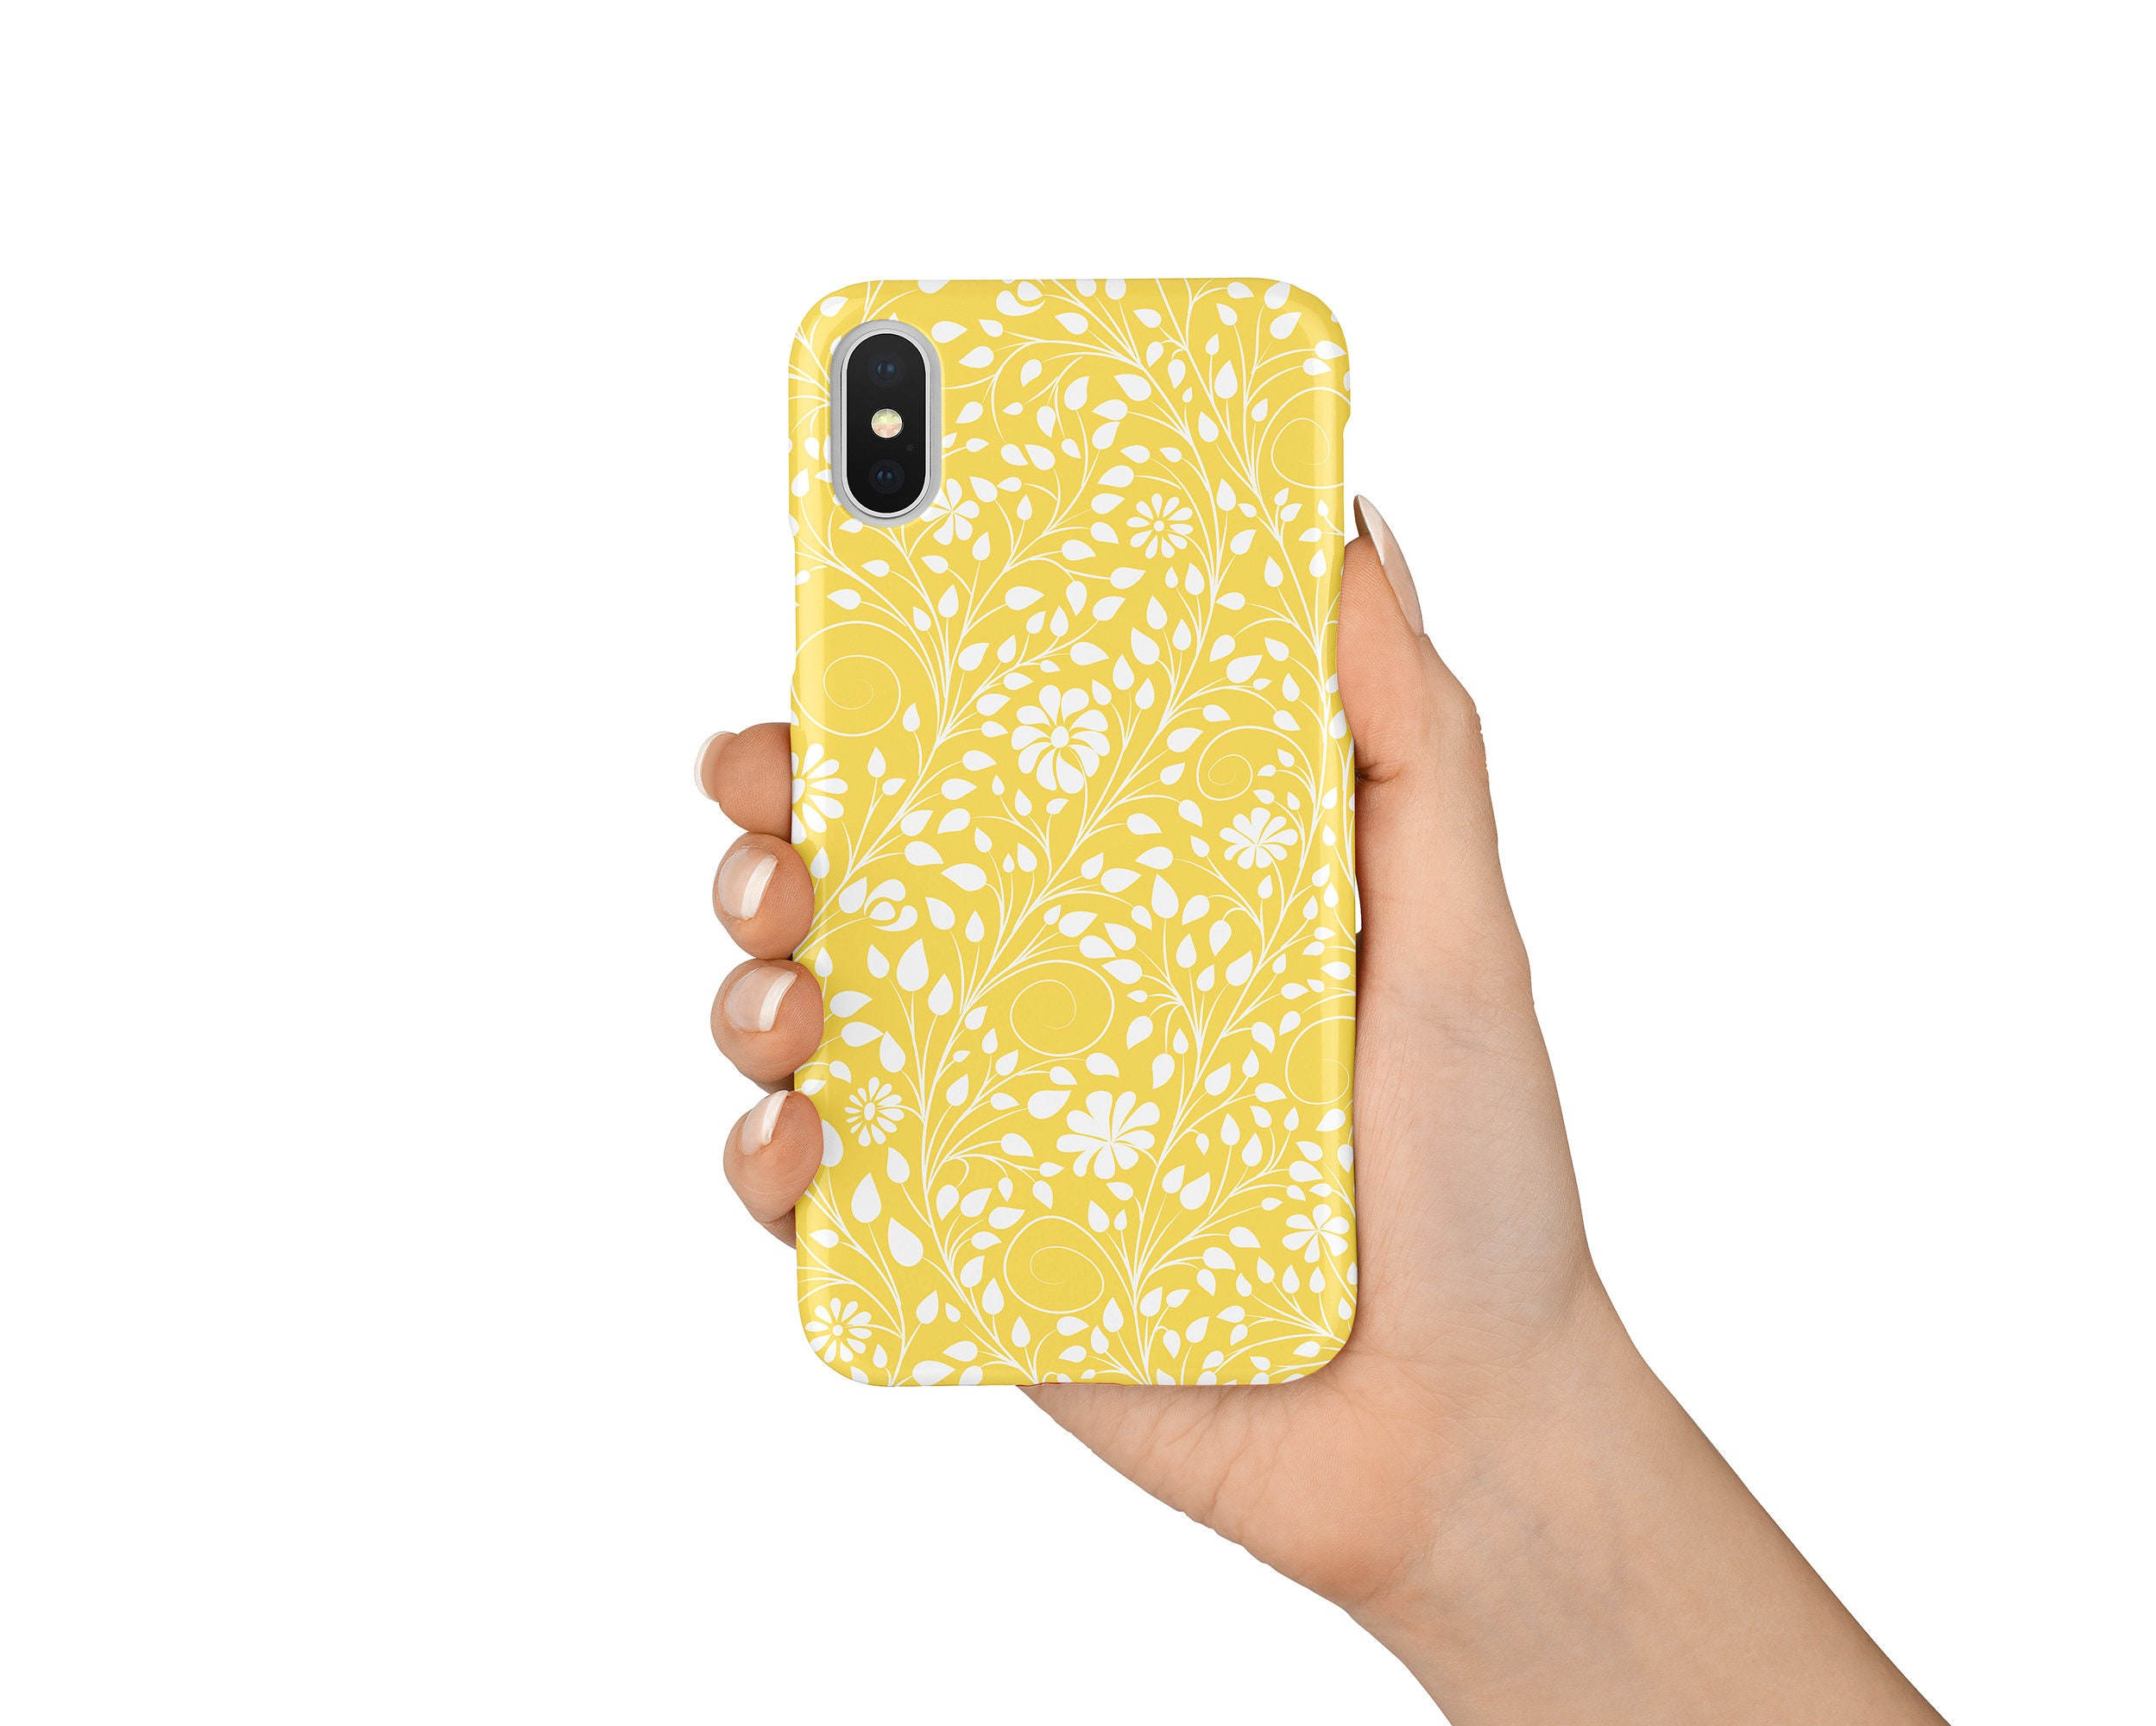 new style 01201 7d688 Yellow Floral iPhone Case, iPhone X Case, iPhone 8 Case, iPhone 8 Plus  Case, iPhone 7 Case, iPhone 7 Plus Case, iPhone 6S Case, Gift Idea